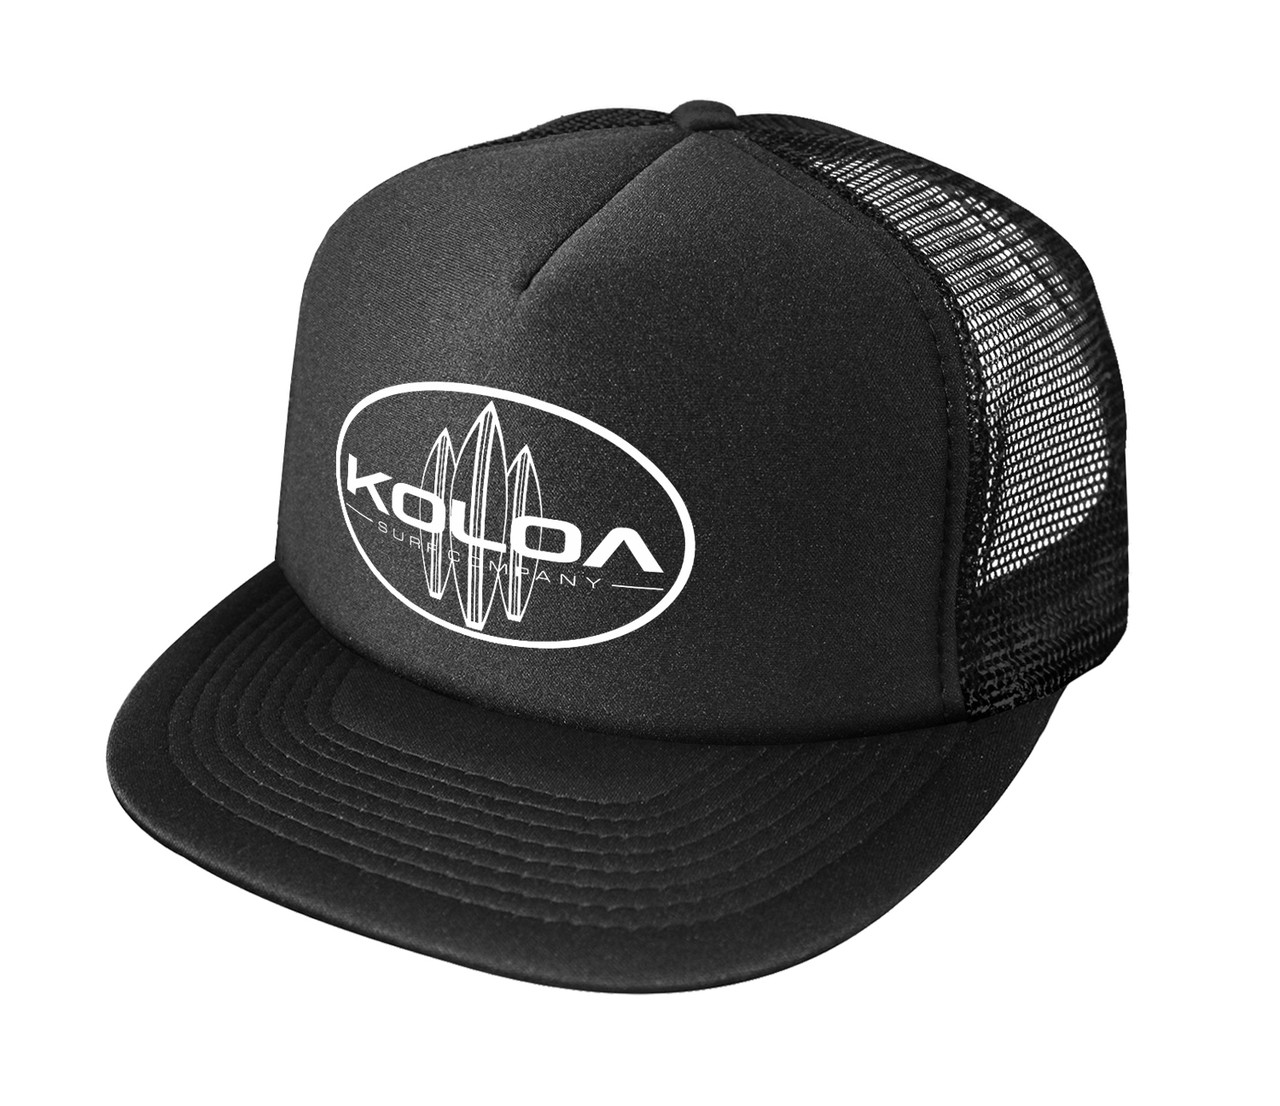 d342e9b9155ac ... Mesh Snapback High Profile Trucker Hats - Black   White logo. Black  with White logo